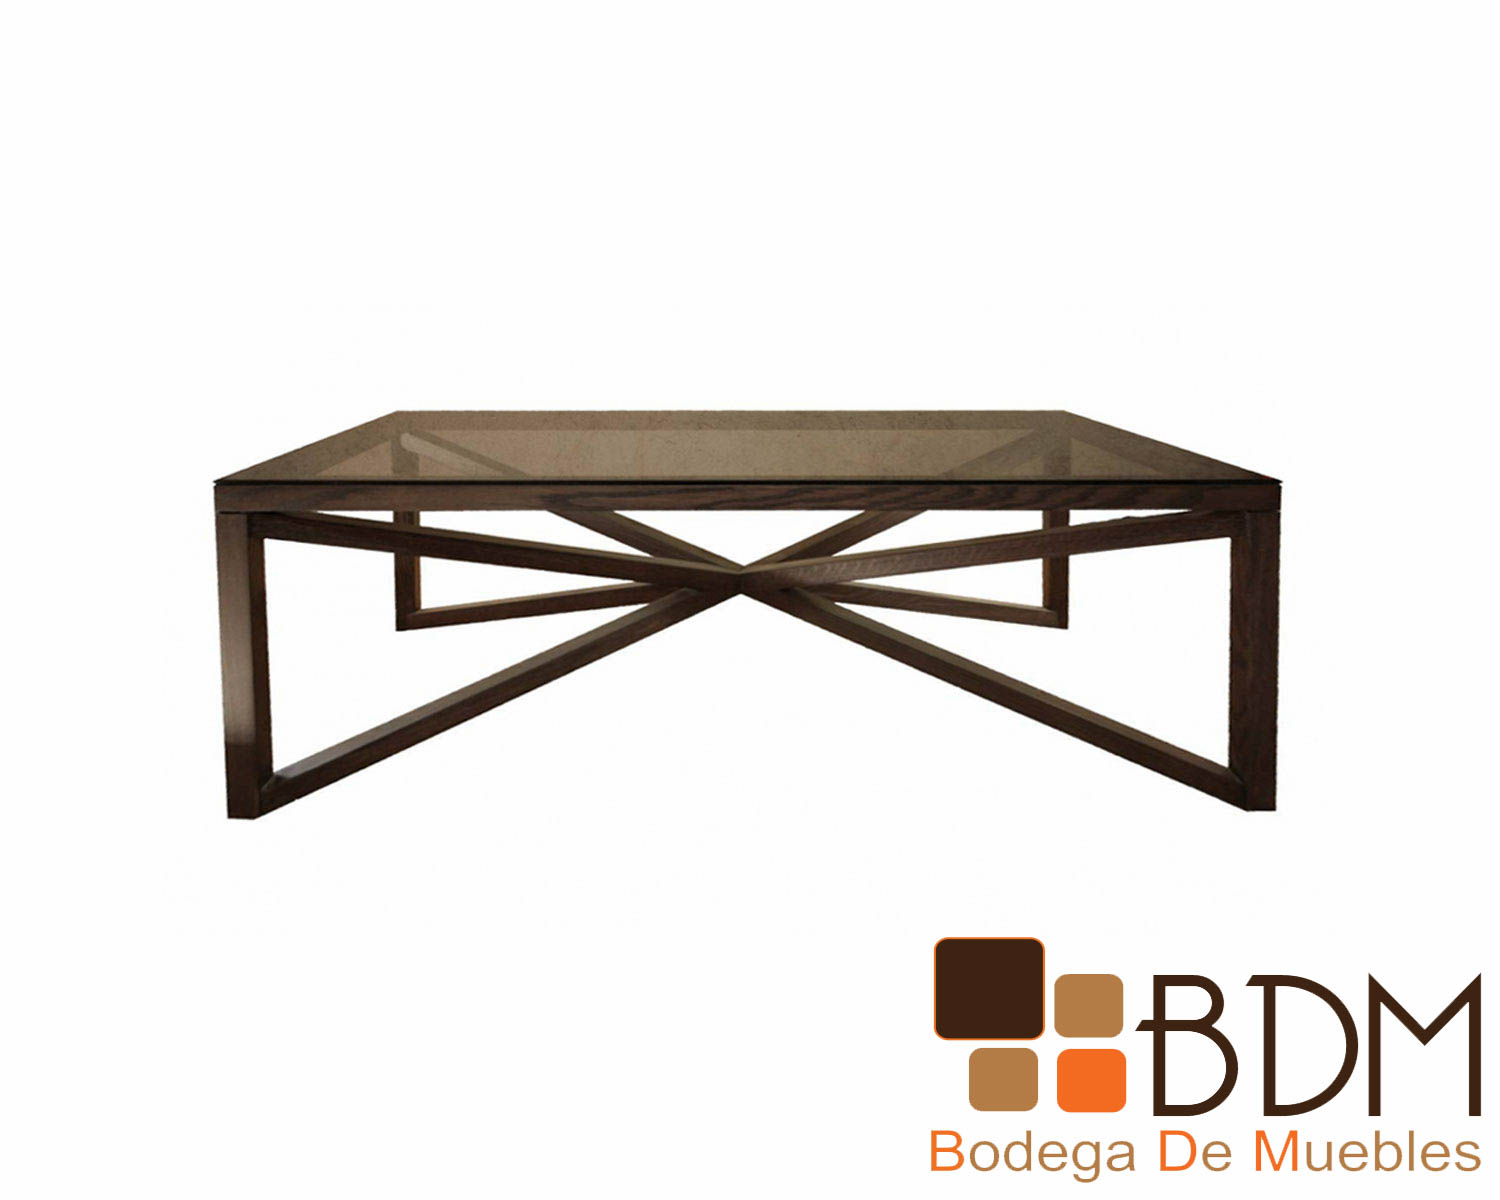 Mesa De Centro Color Chocolate Beatriz Bodega De Muebles # Muebles Beatriz